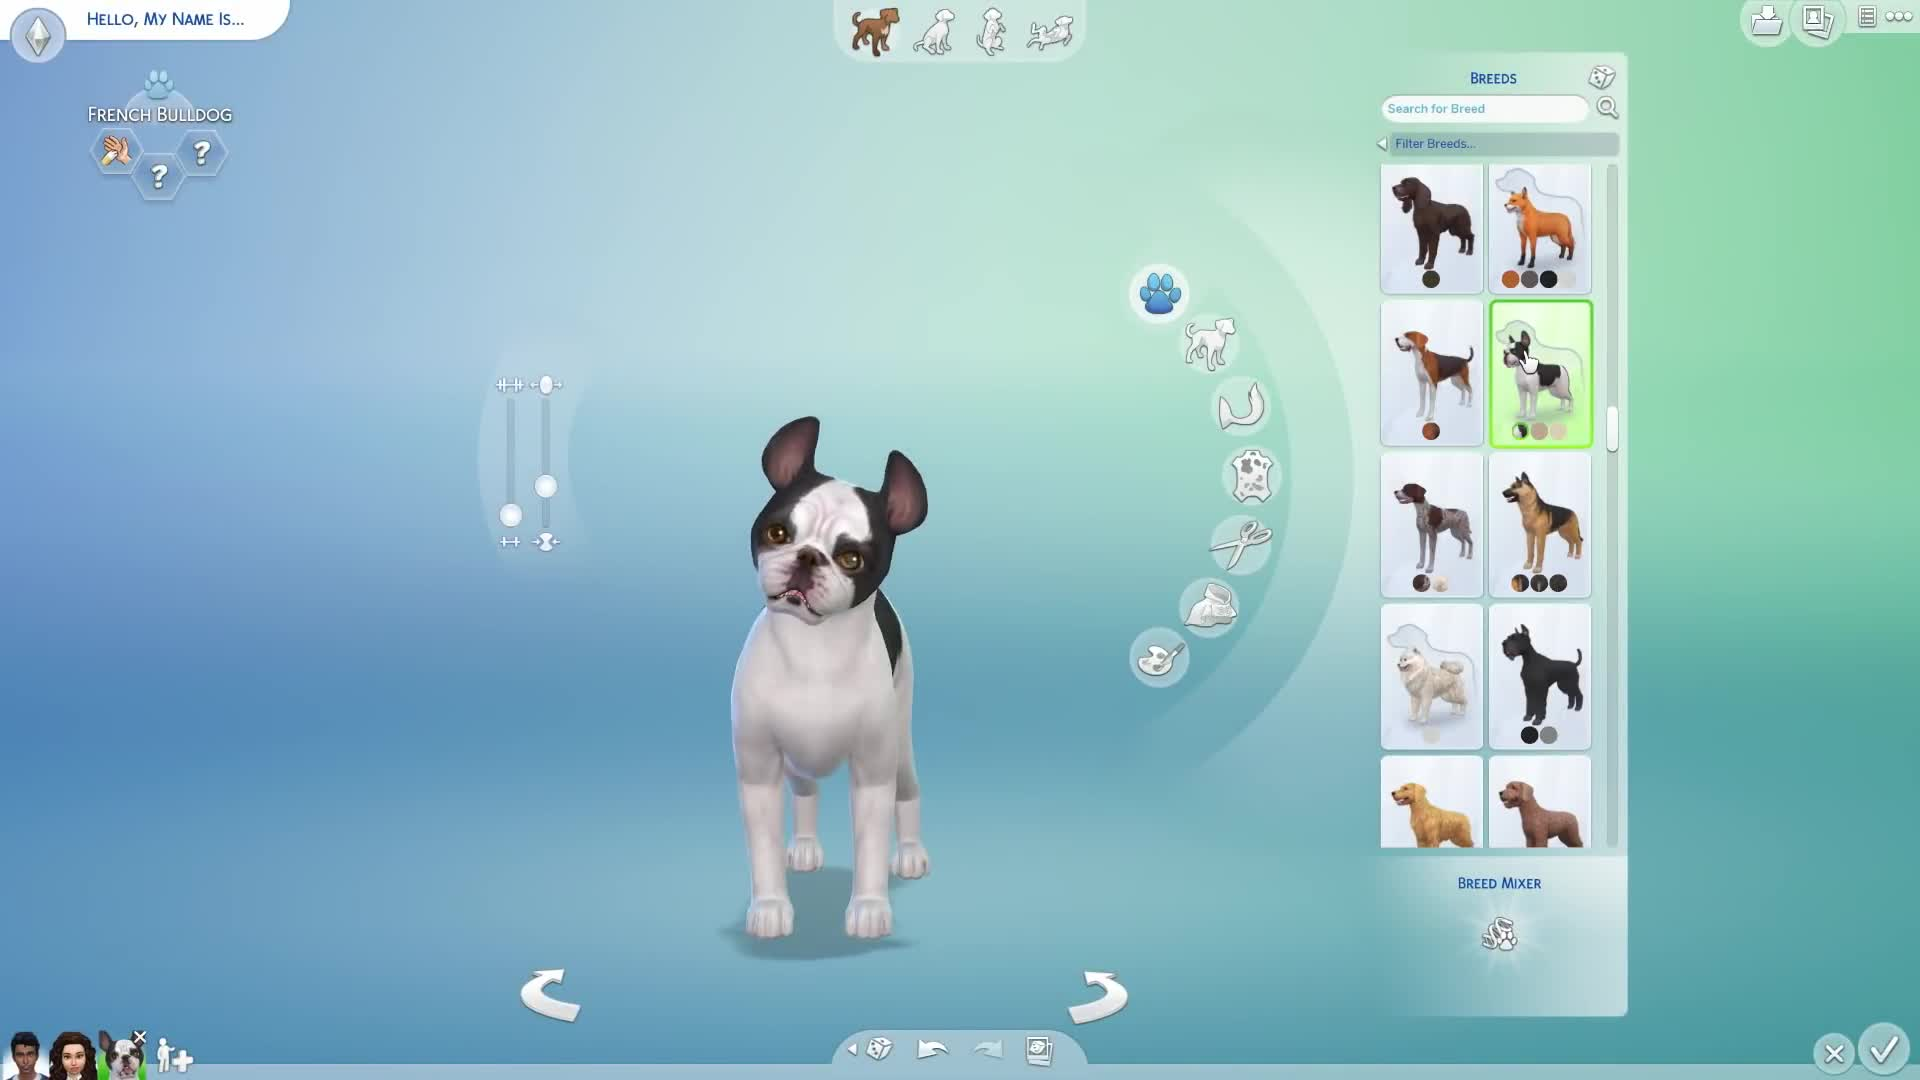 The Sims 4 Cats Dogs Create A Pet Official Gameplay Trailer Gif